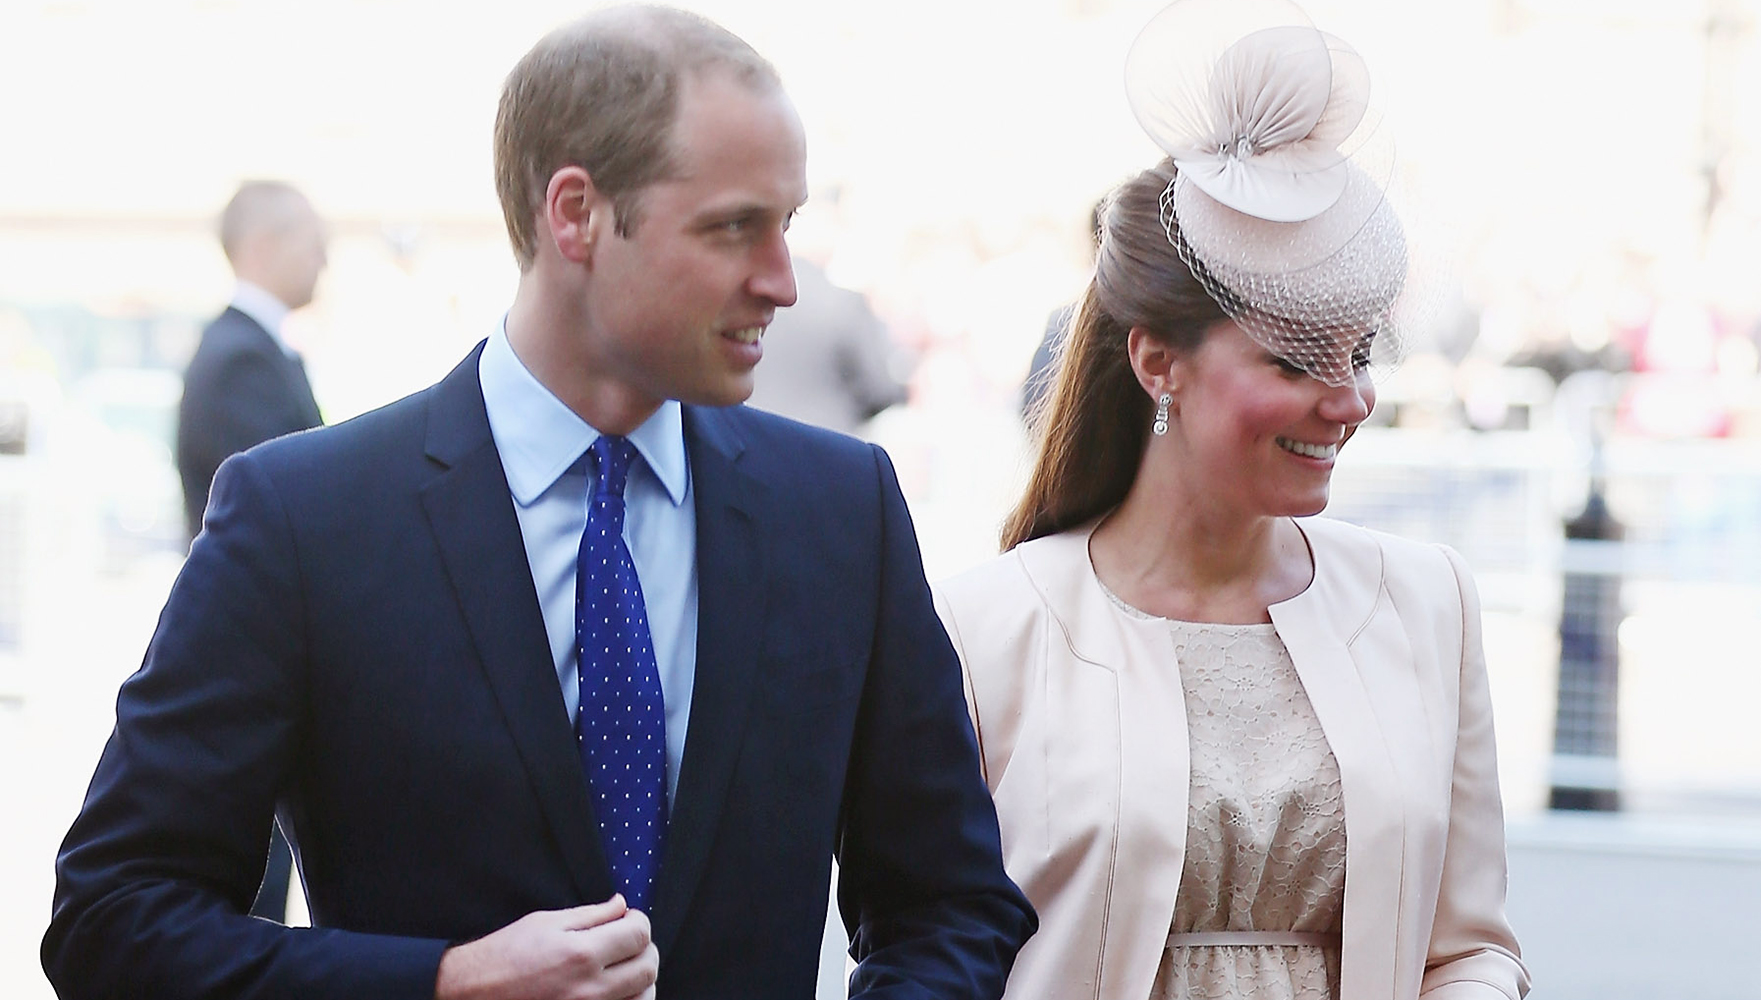 WATCH: Kate Middleton's Baby Bump On Display at the Queen's Coronation